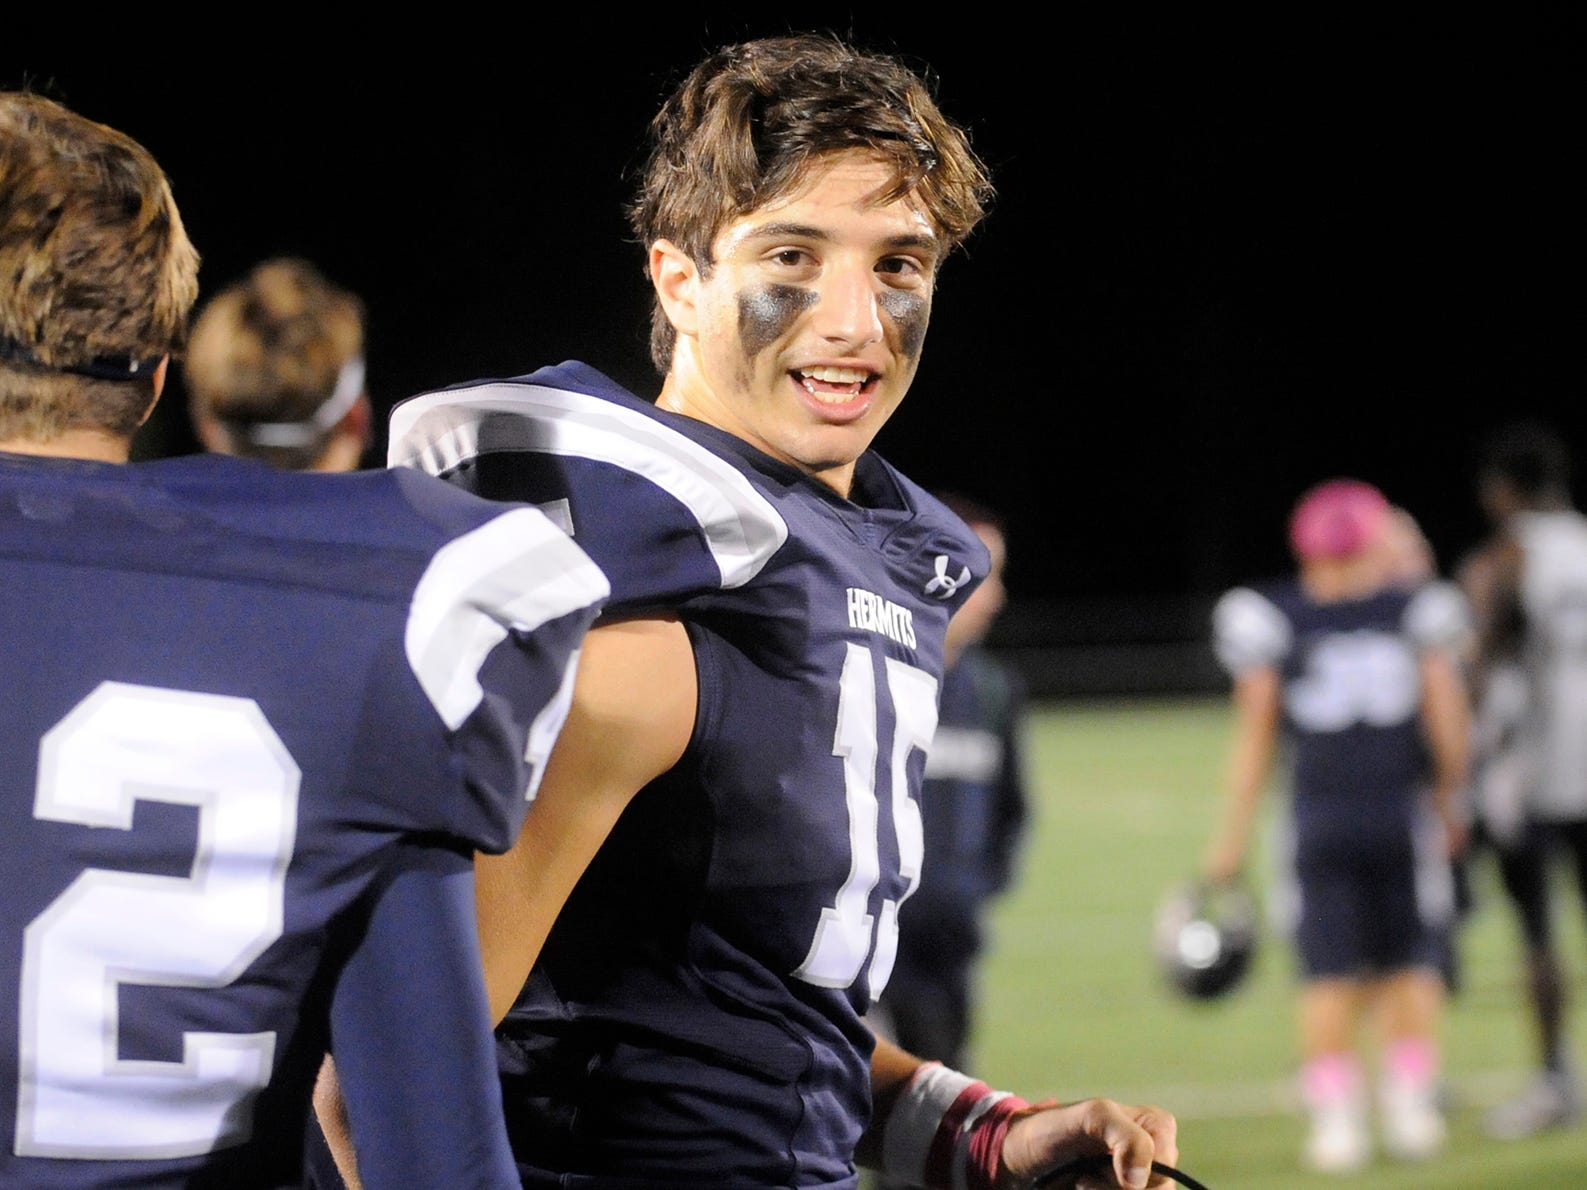 St. Augustine's Joey Kolonich celebrates a team win over Holy Spirit. The Hermits defeated the visiting Spartans, 27-14.